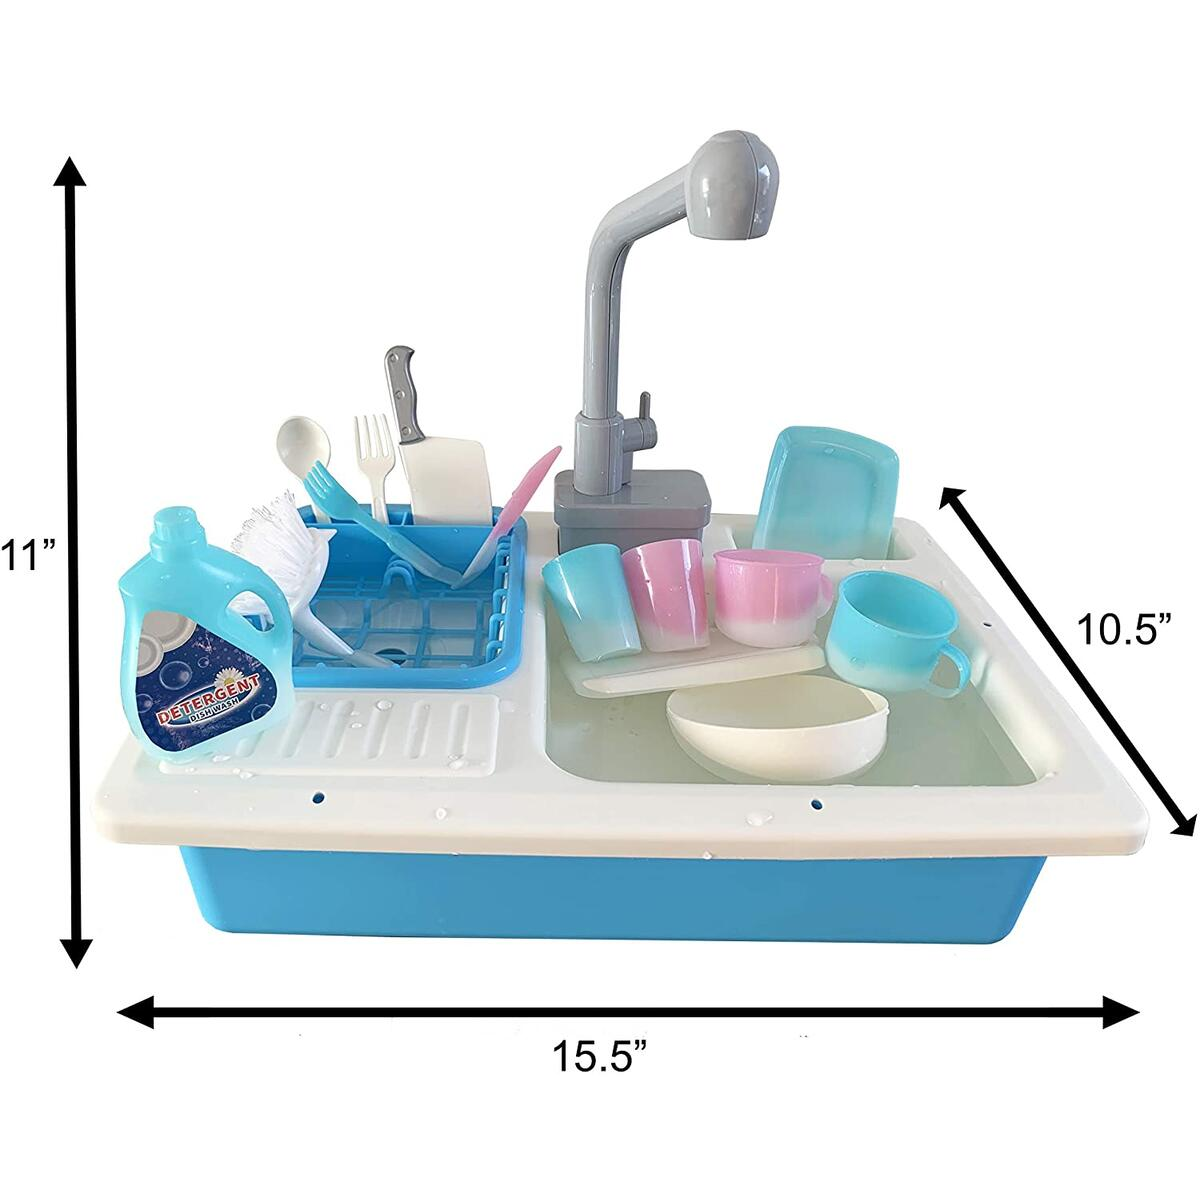 Kid Sink Toy With Real Running Water and Color Change